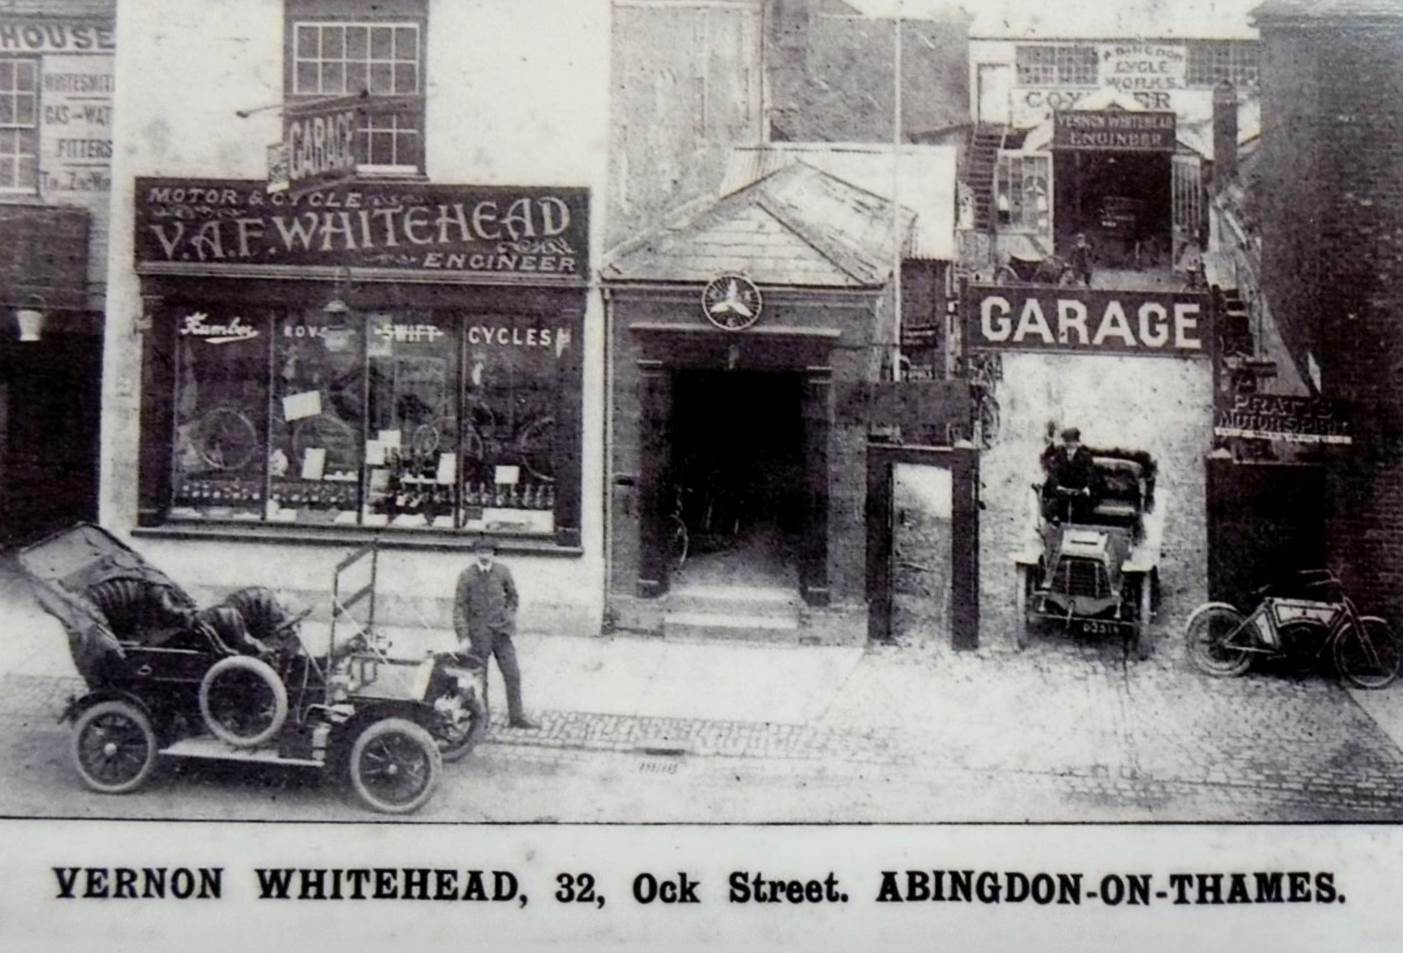 Coxeter's garage next to Vernon Whitehead's cycle shop at 32 Ock Street in about 1910.